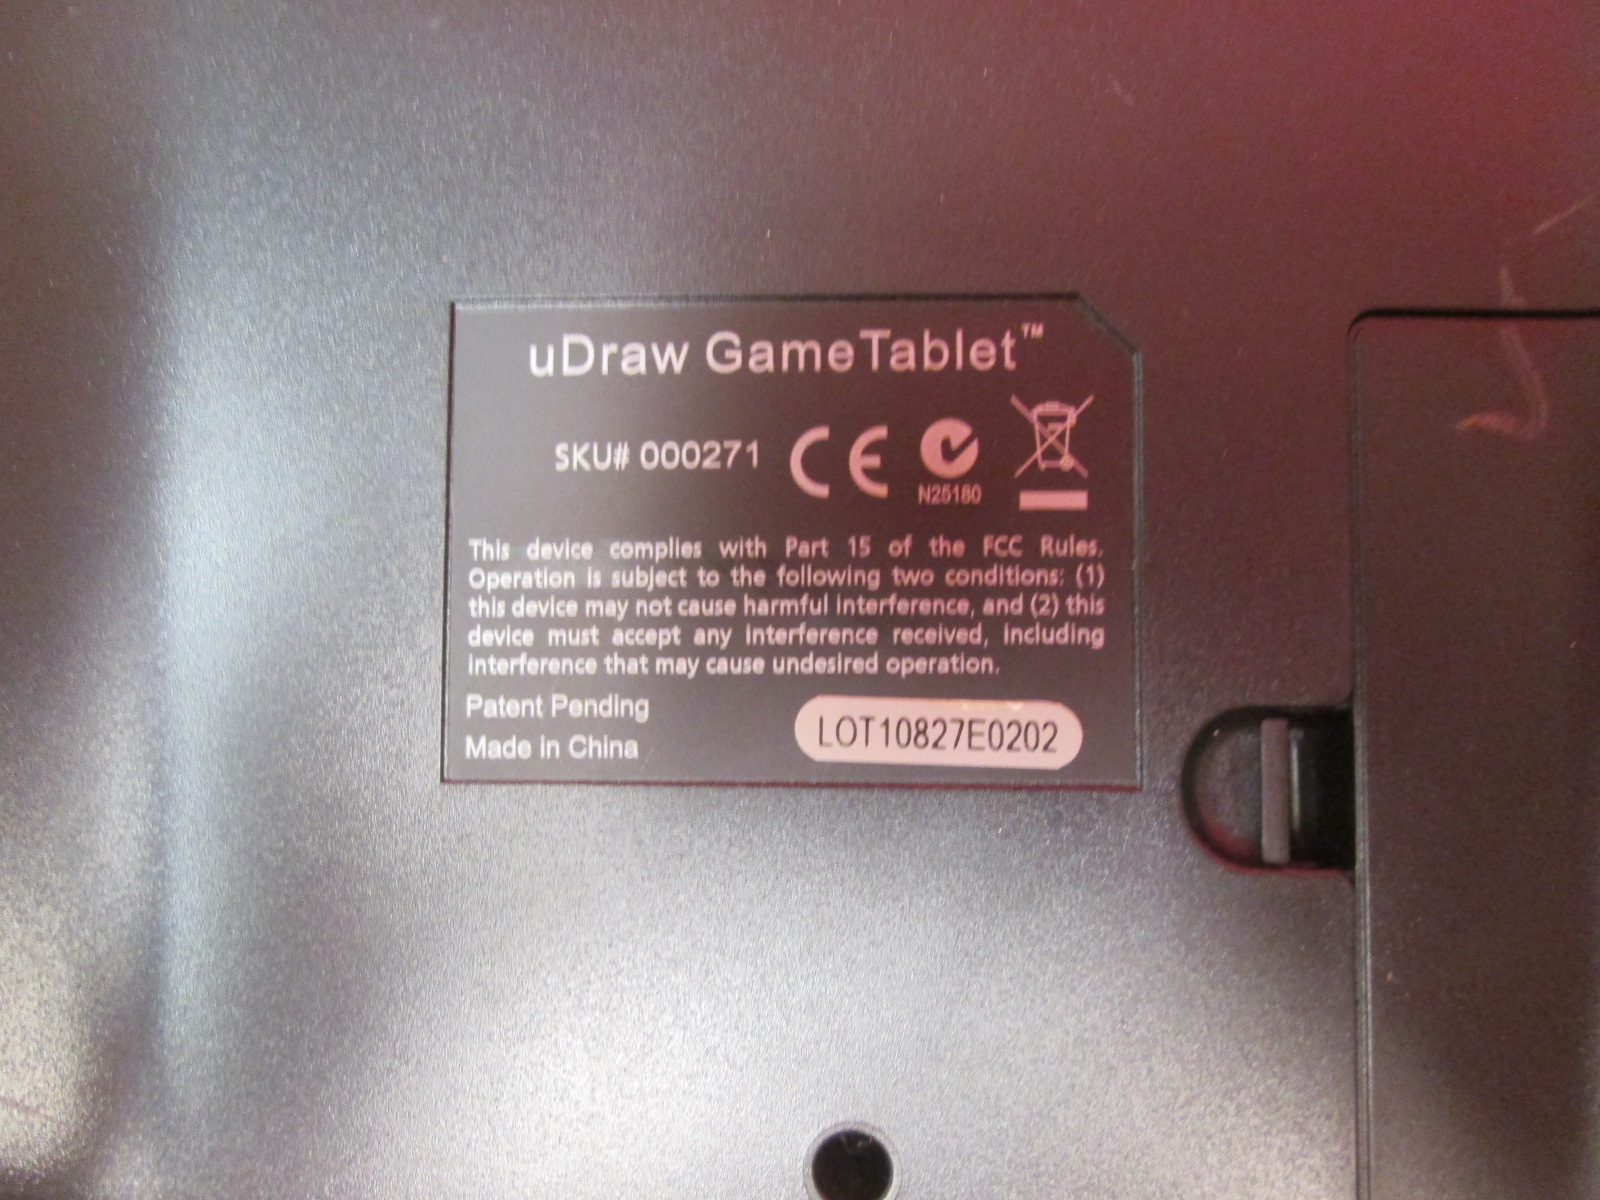 udraw game tablet ps3 instructions wii